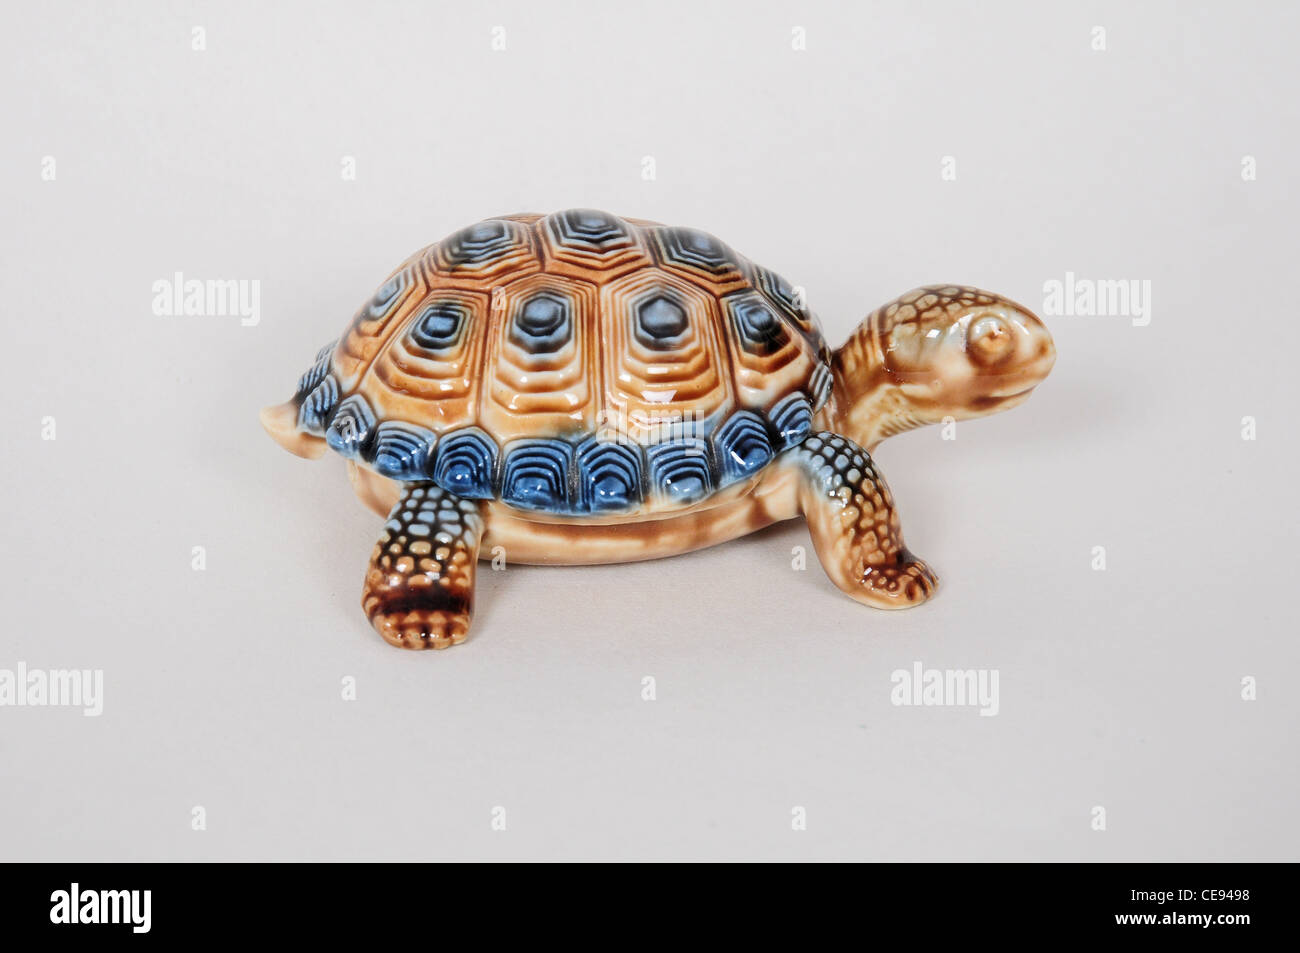 tortoise ash tray by Wade - Stock Image